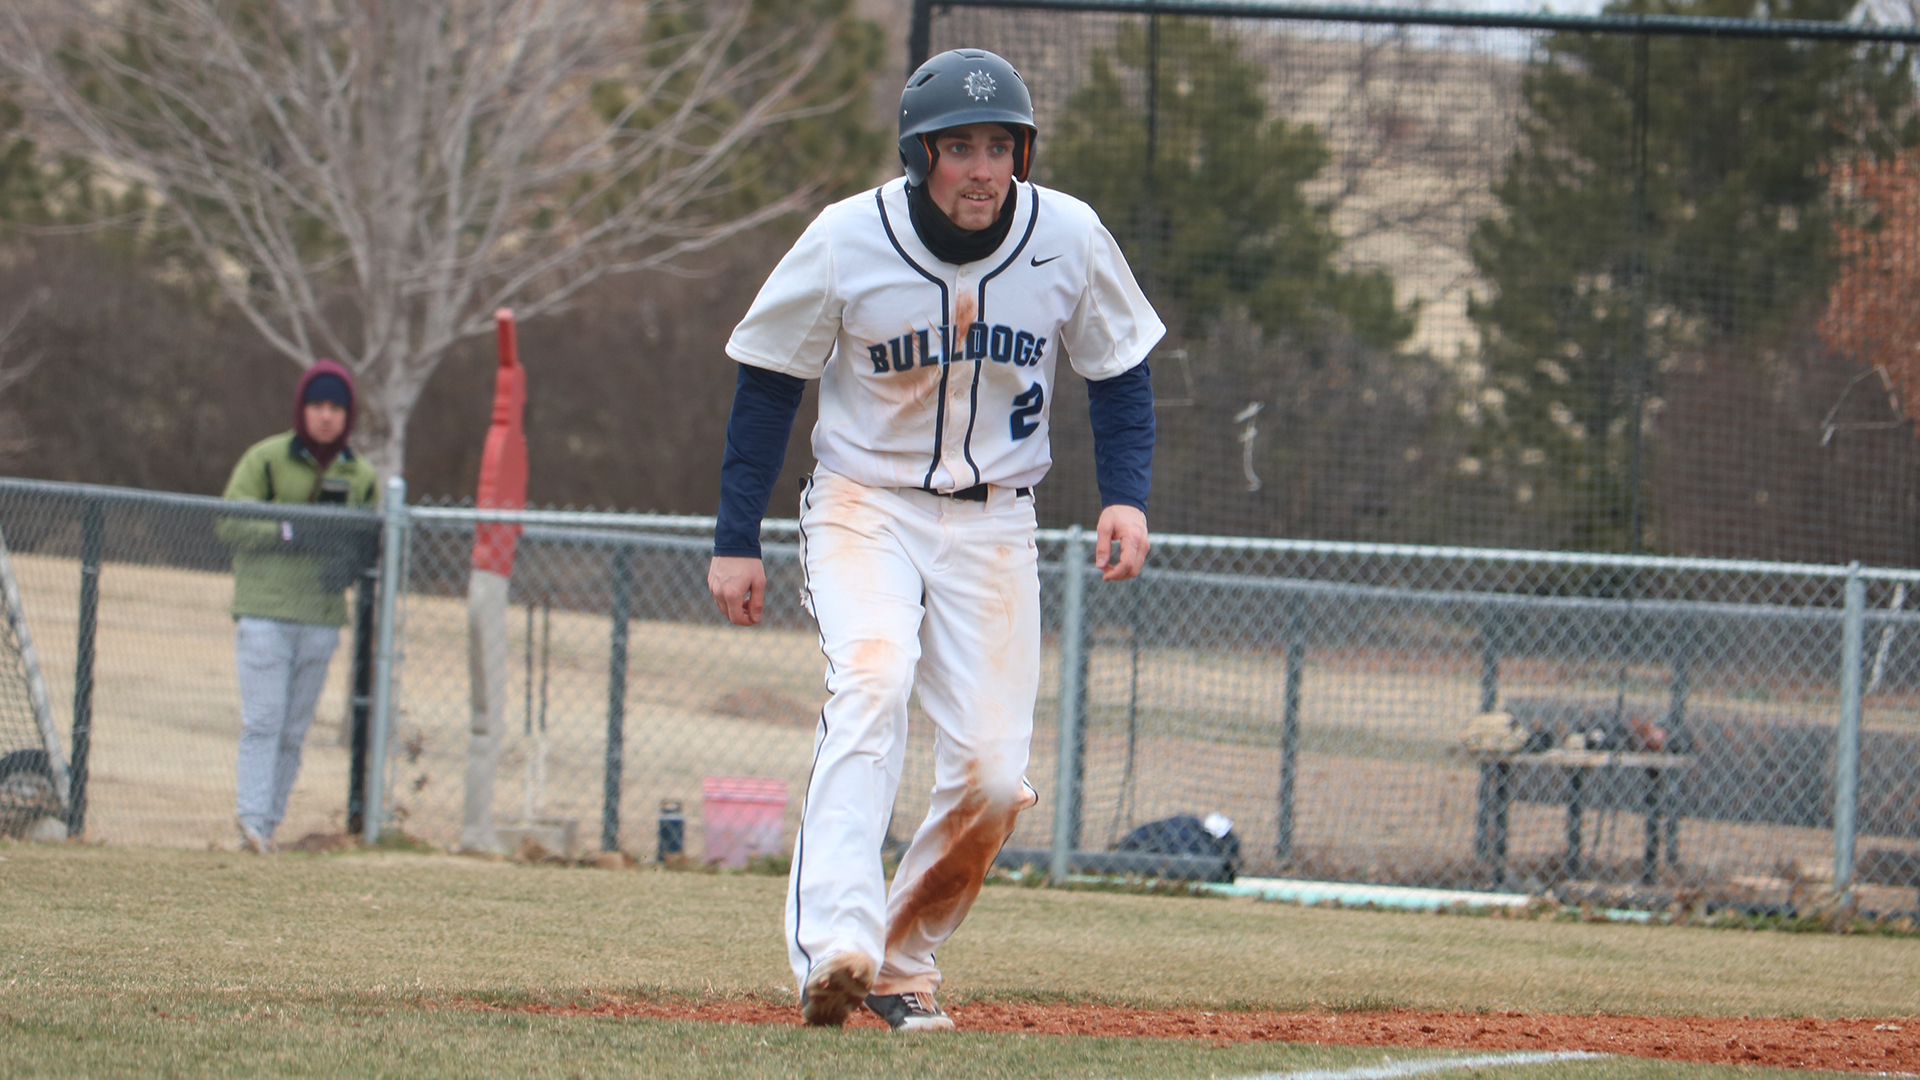 Alex Bedard (Levis, Que.) had five hits - including three doubles and a triple - in three games for the Southwestern Oklahoma State Bulldogs. Photo: Southwestern Oklahoma State University Athletics